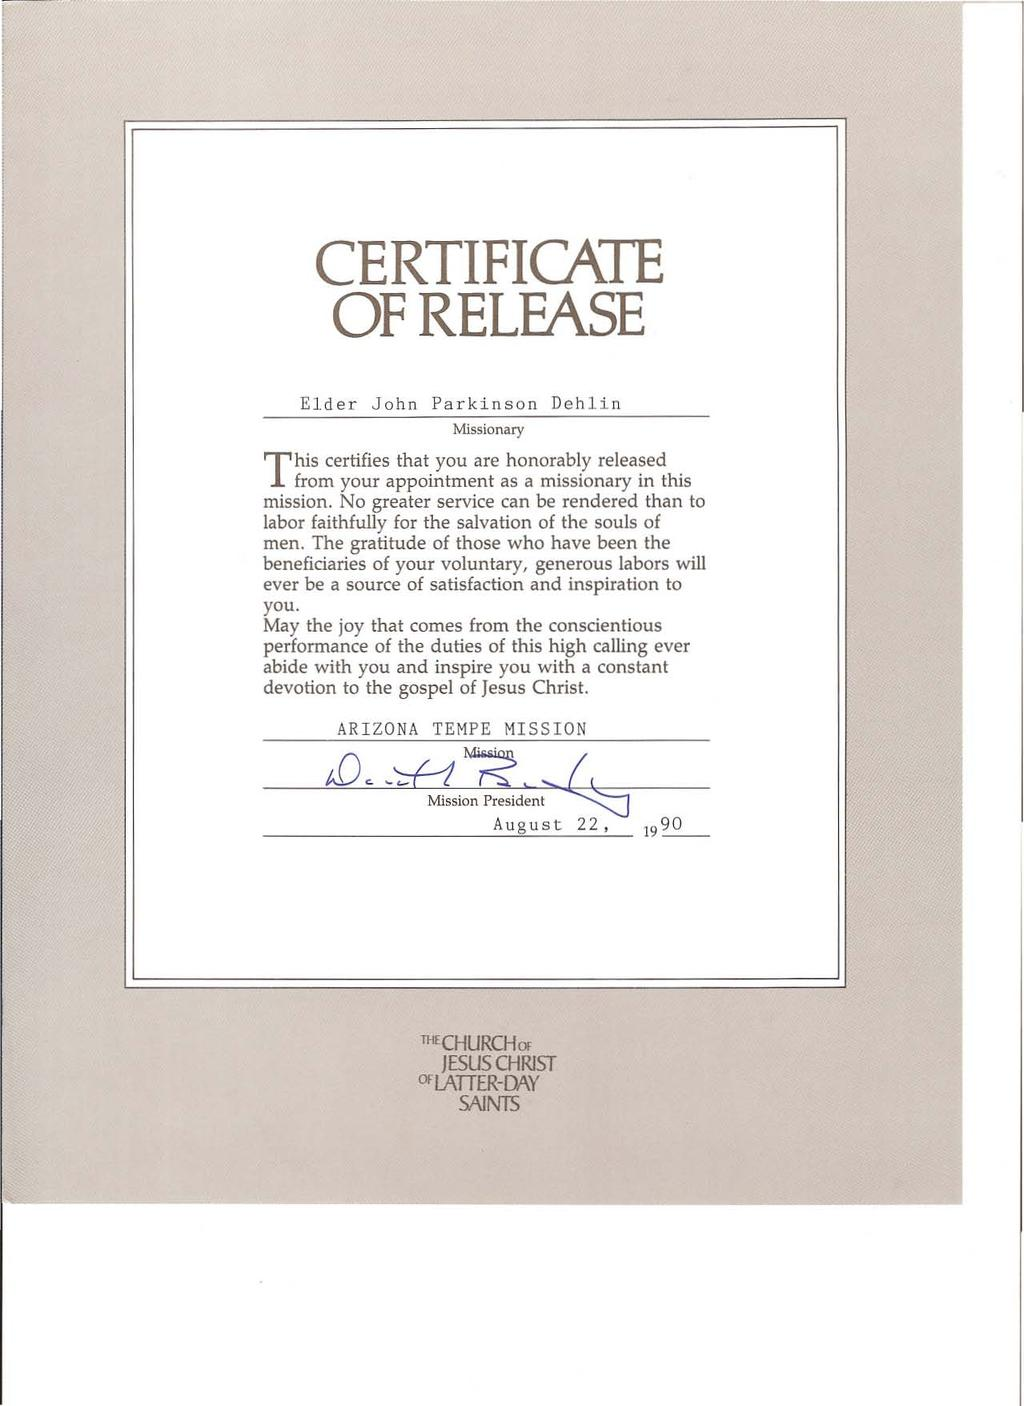 CERTIFICATE OF RELEASE Elder John Parkinson Deh!io Missionary ThiS certifies that you are honorably released from your appointment as a missionary in this mission.